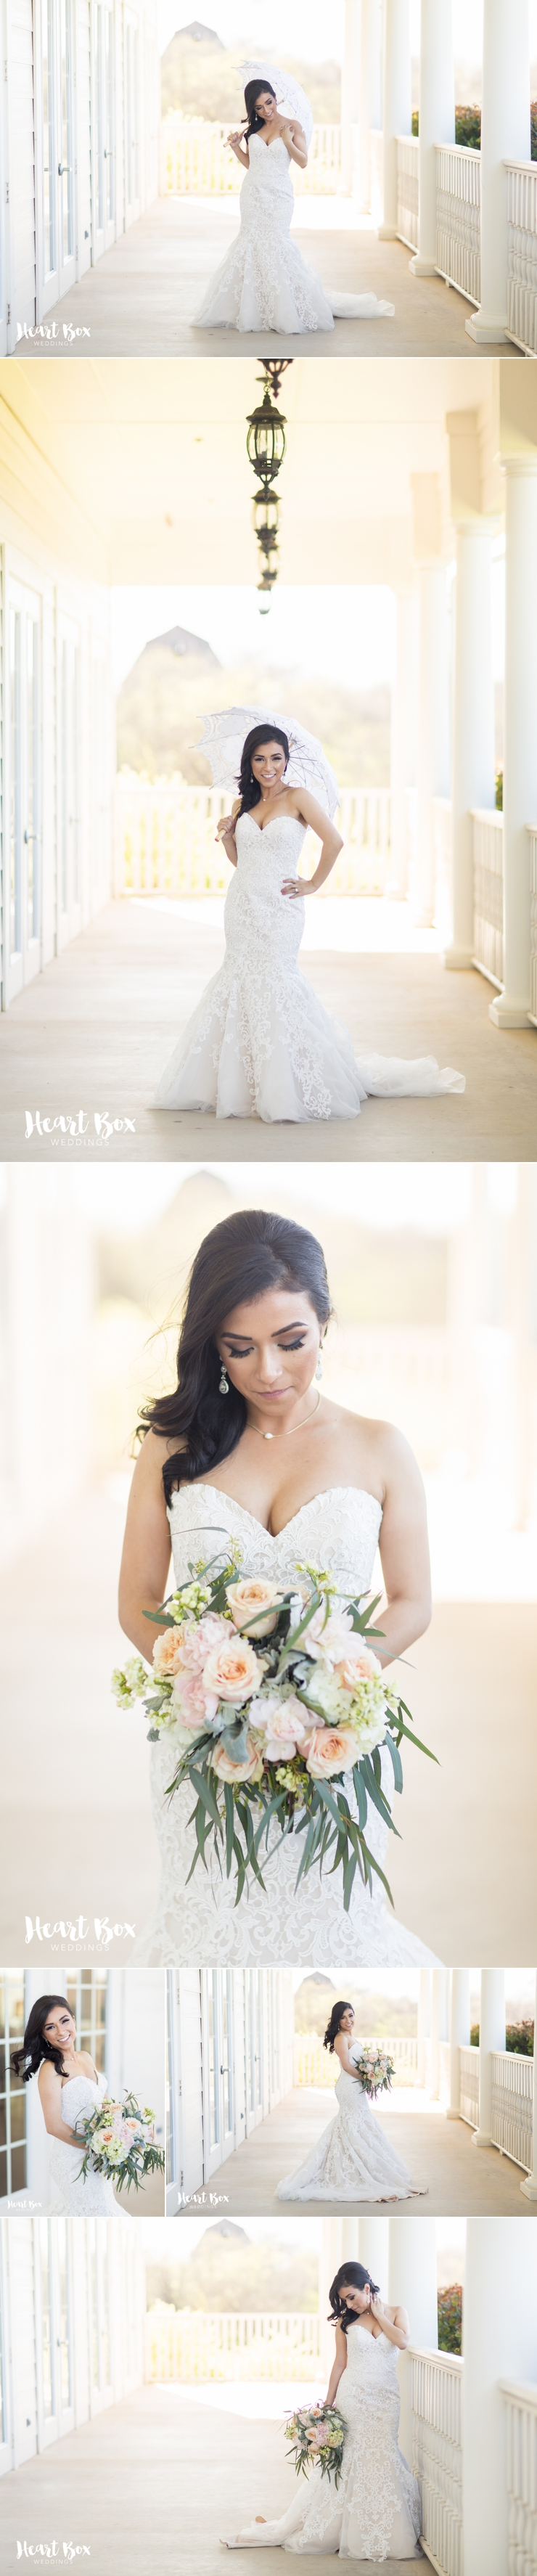 Stephanie Feliciano Bridal Blog Collages 4.jpg